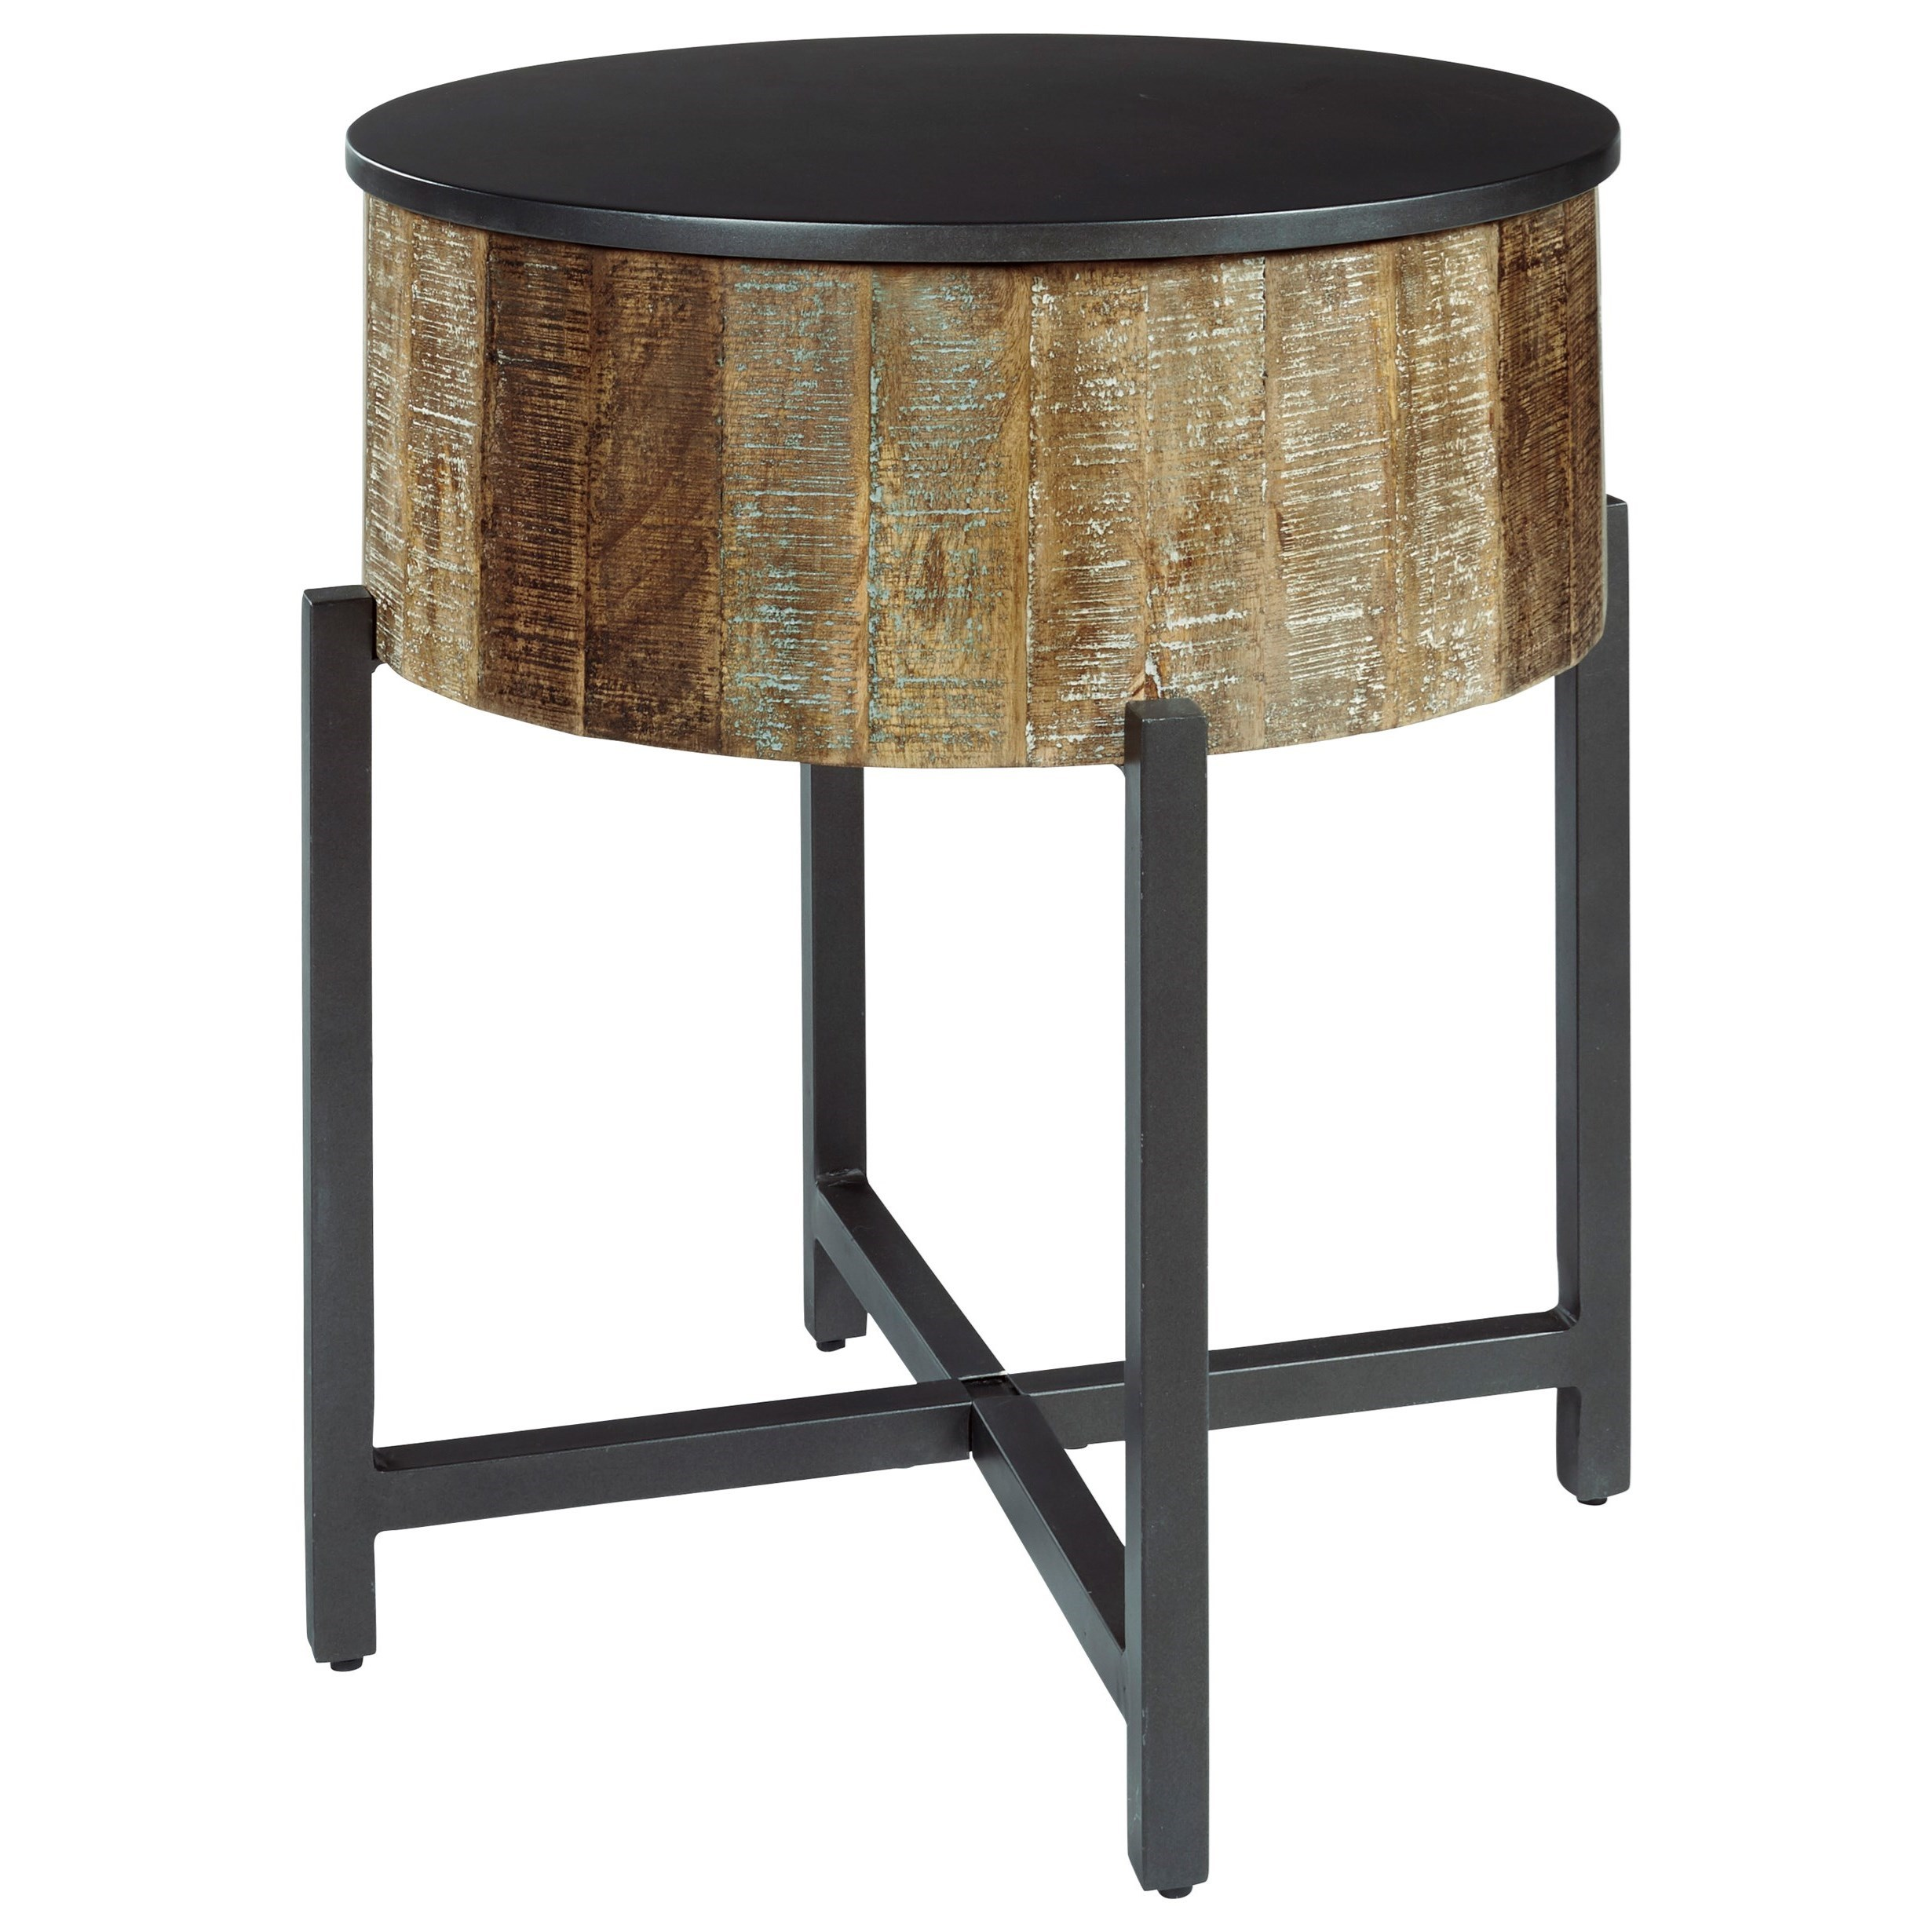 Nashbryn Round End Table by Signature Design by Ashley at Northeast Factory Direct